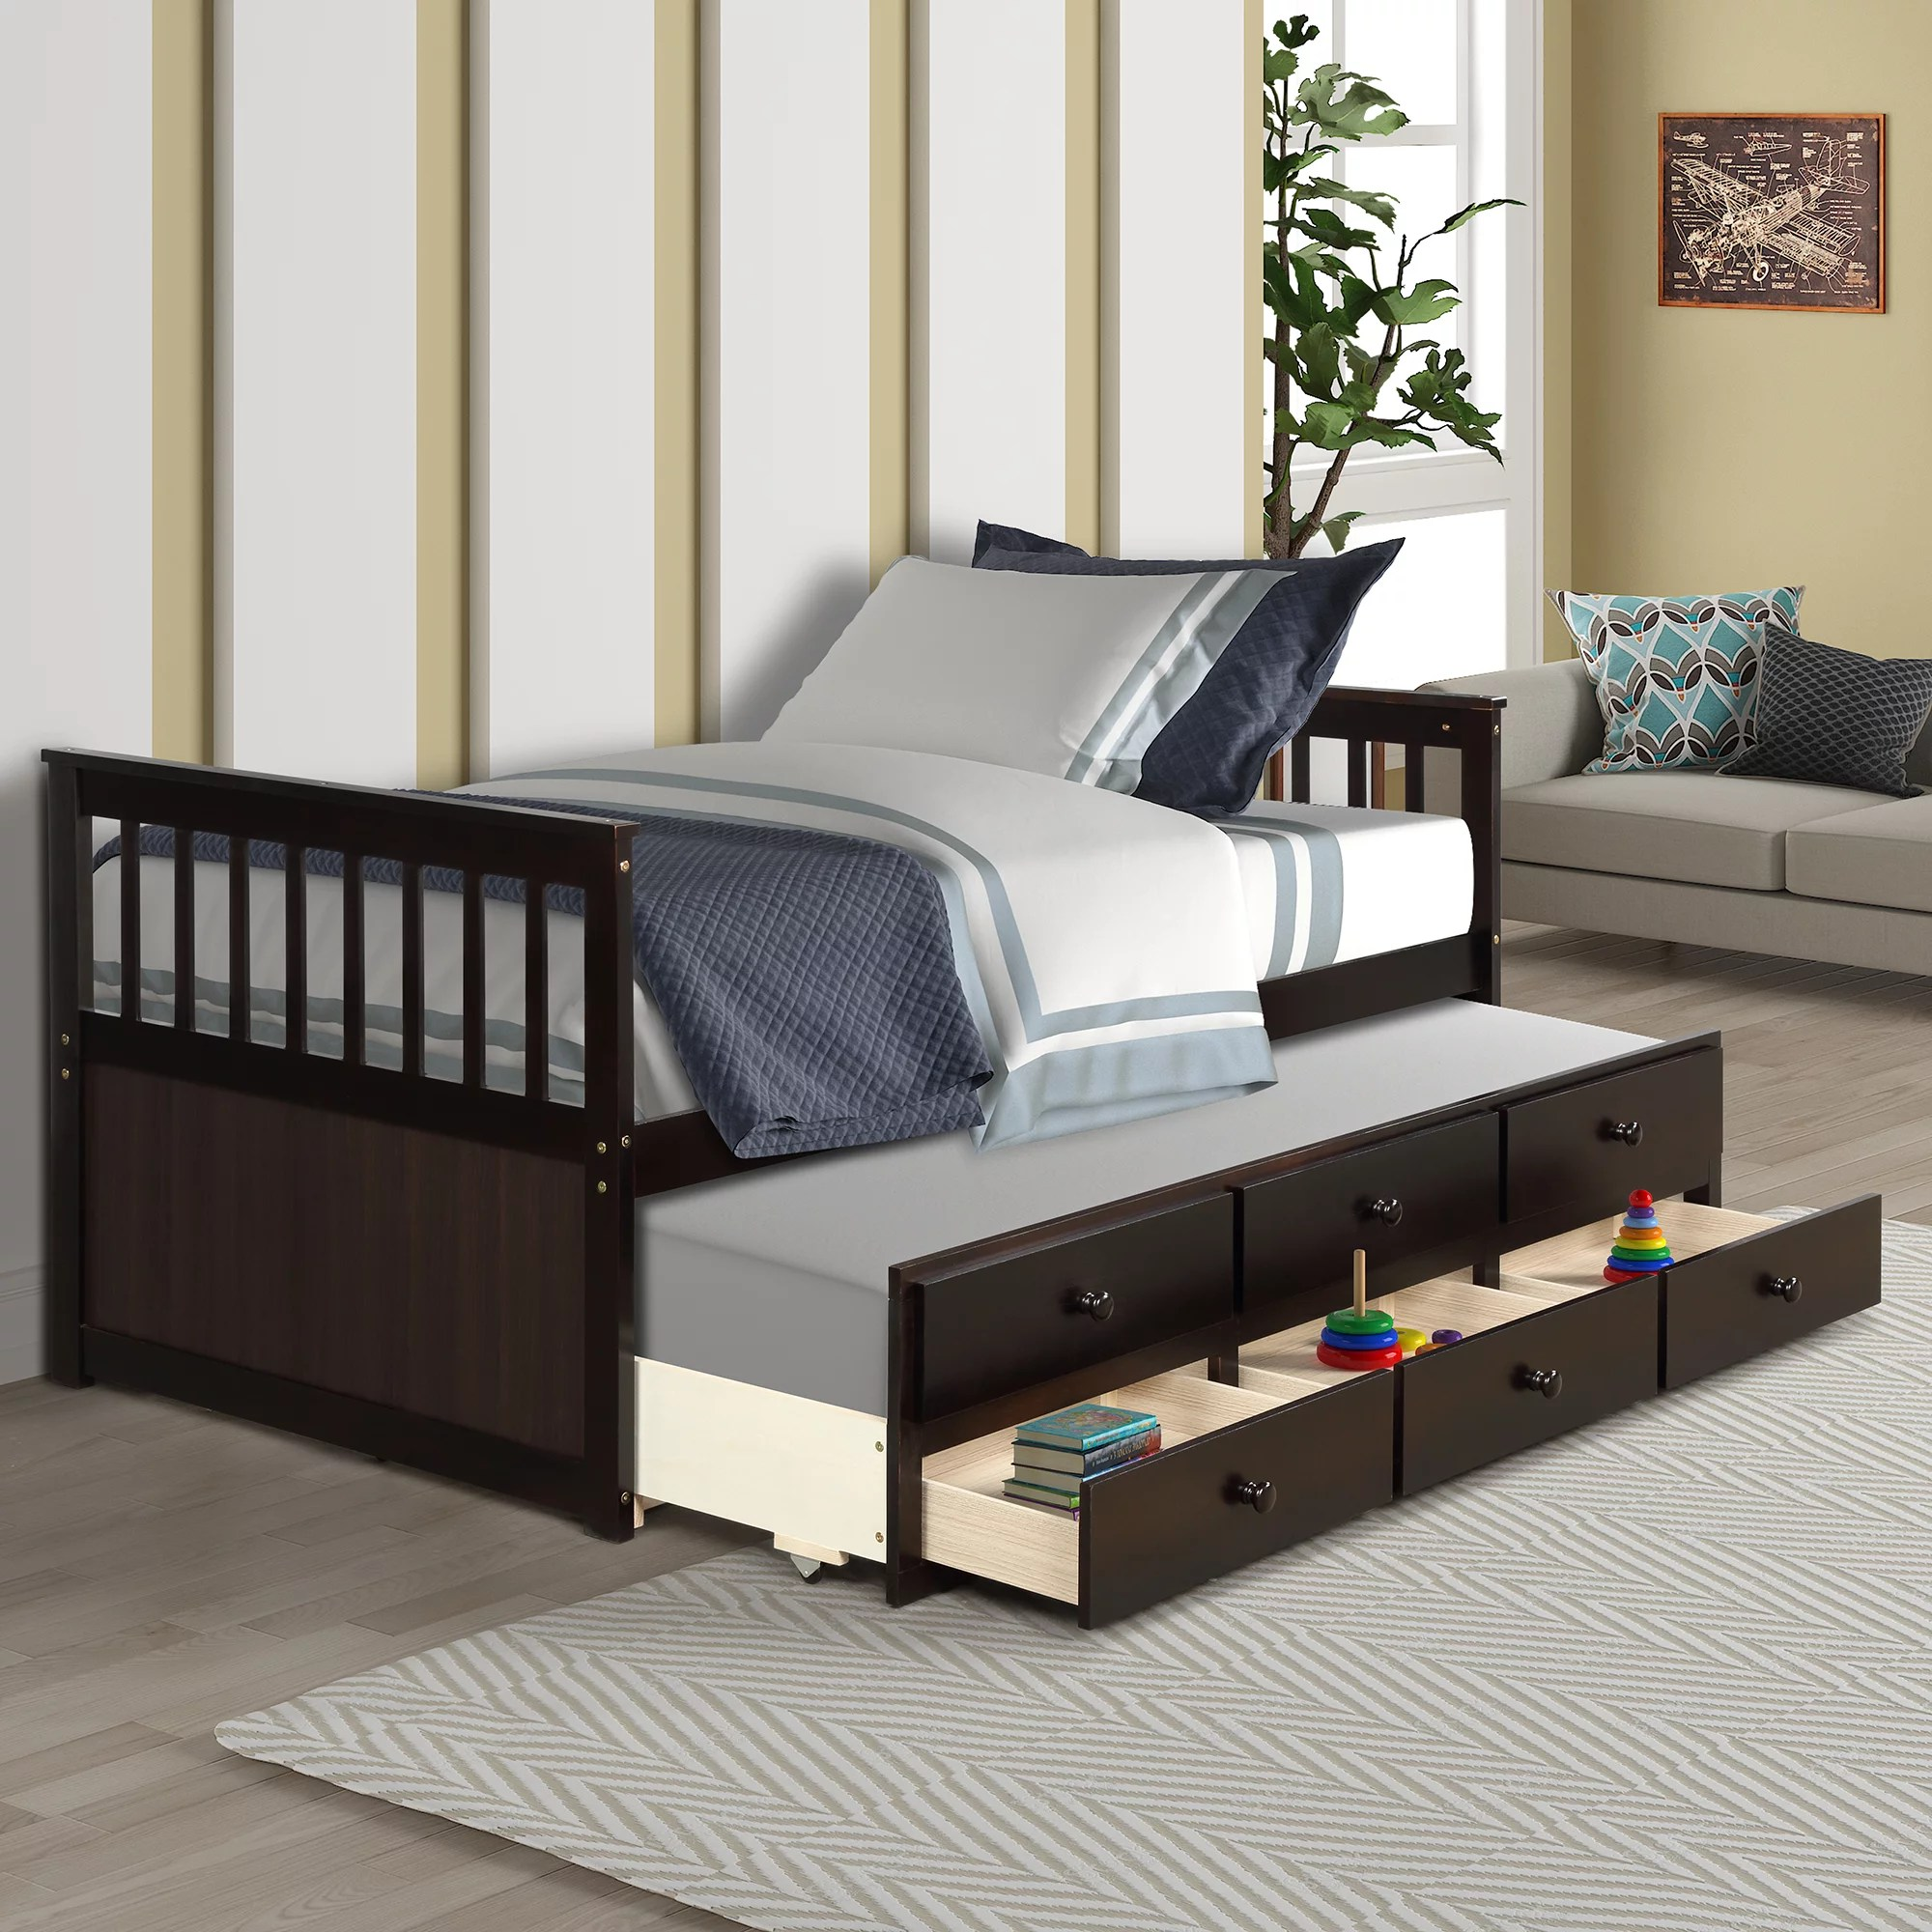 segmart twin daybed bed with trundle captain s bed with 3 storage drawers farmhouse twin style solid wood trundle with slatted headboard and